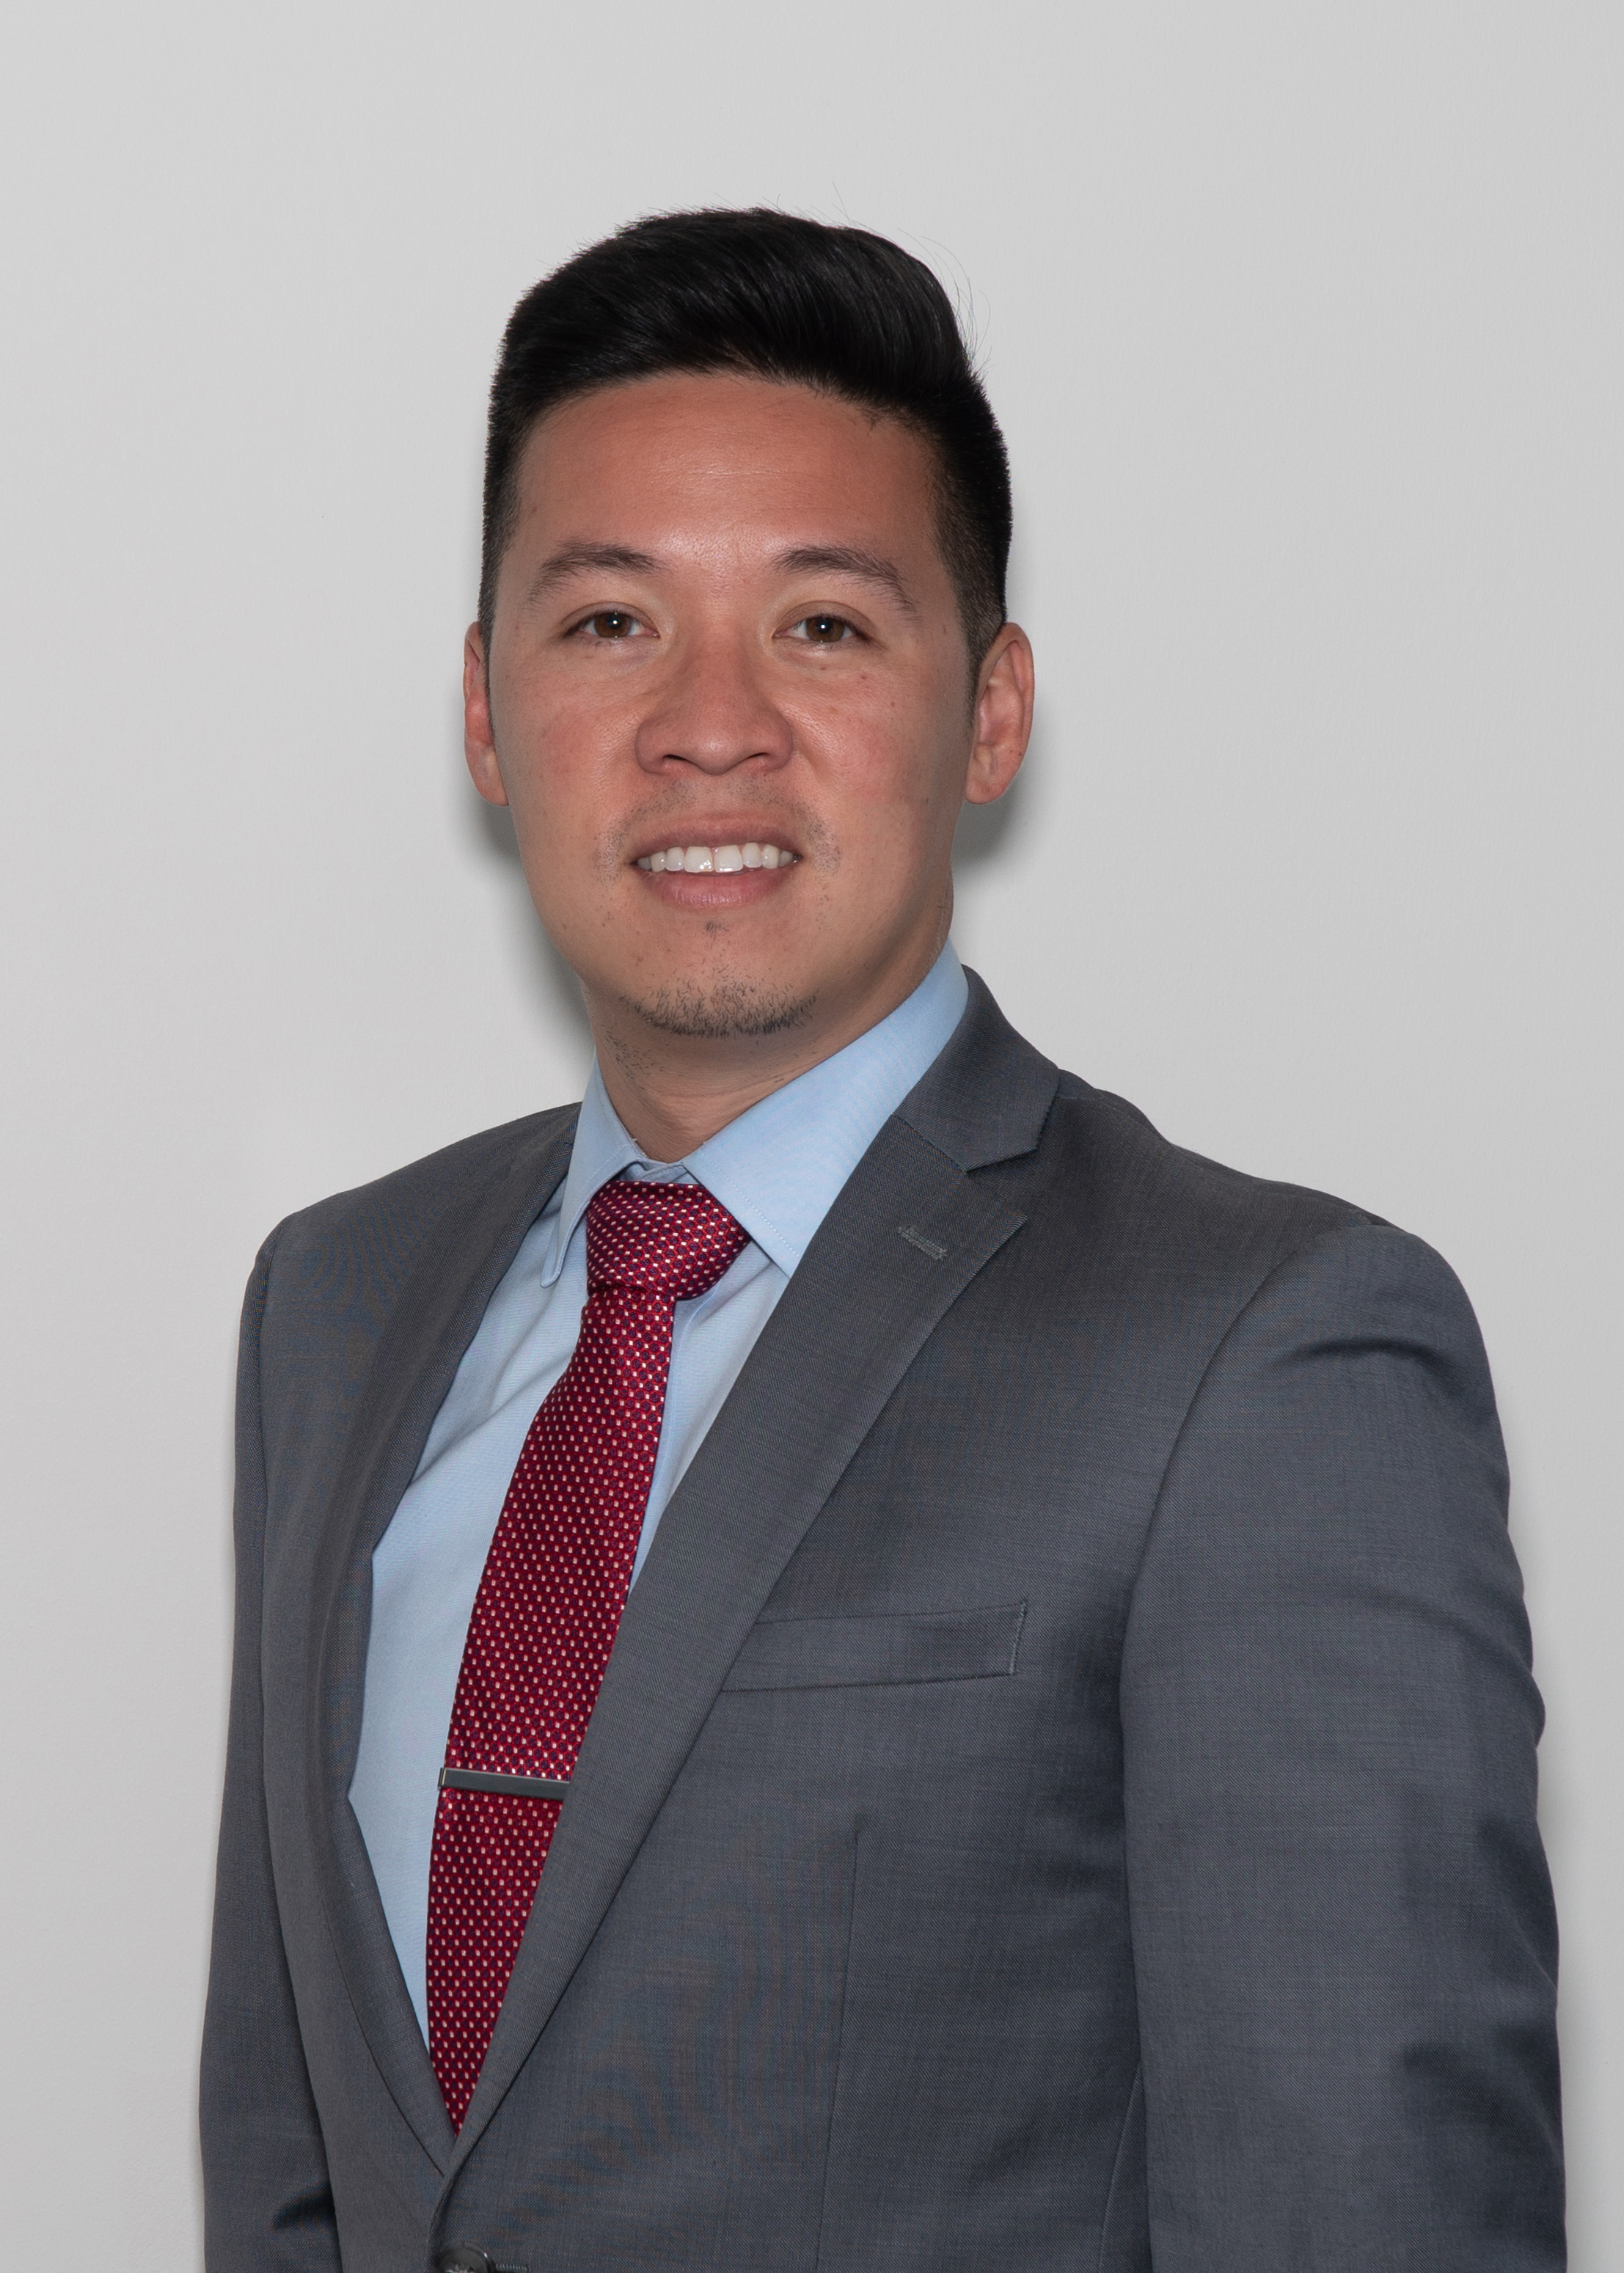 Kris Masias, vice president, sales desk and operations, Megatel Capital Investments,